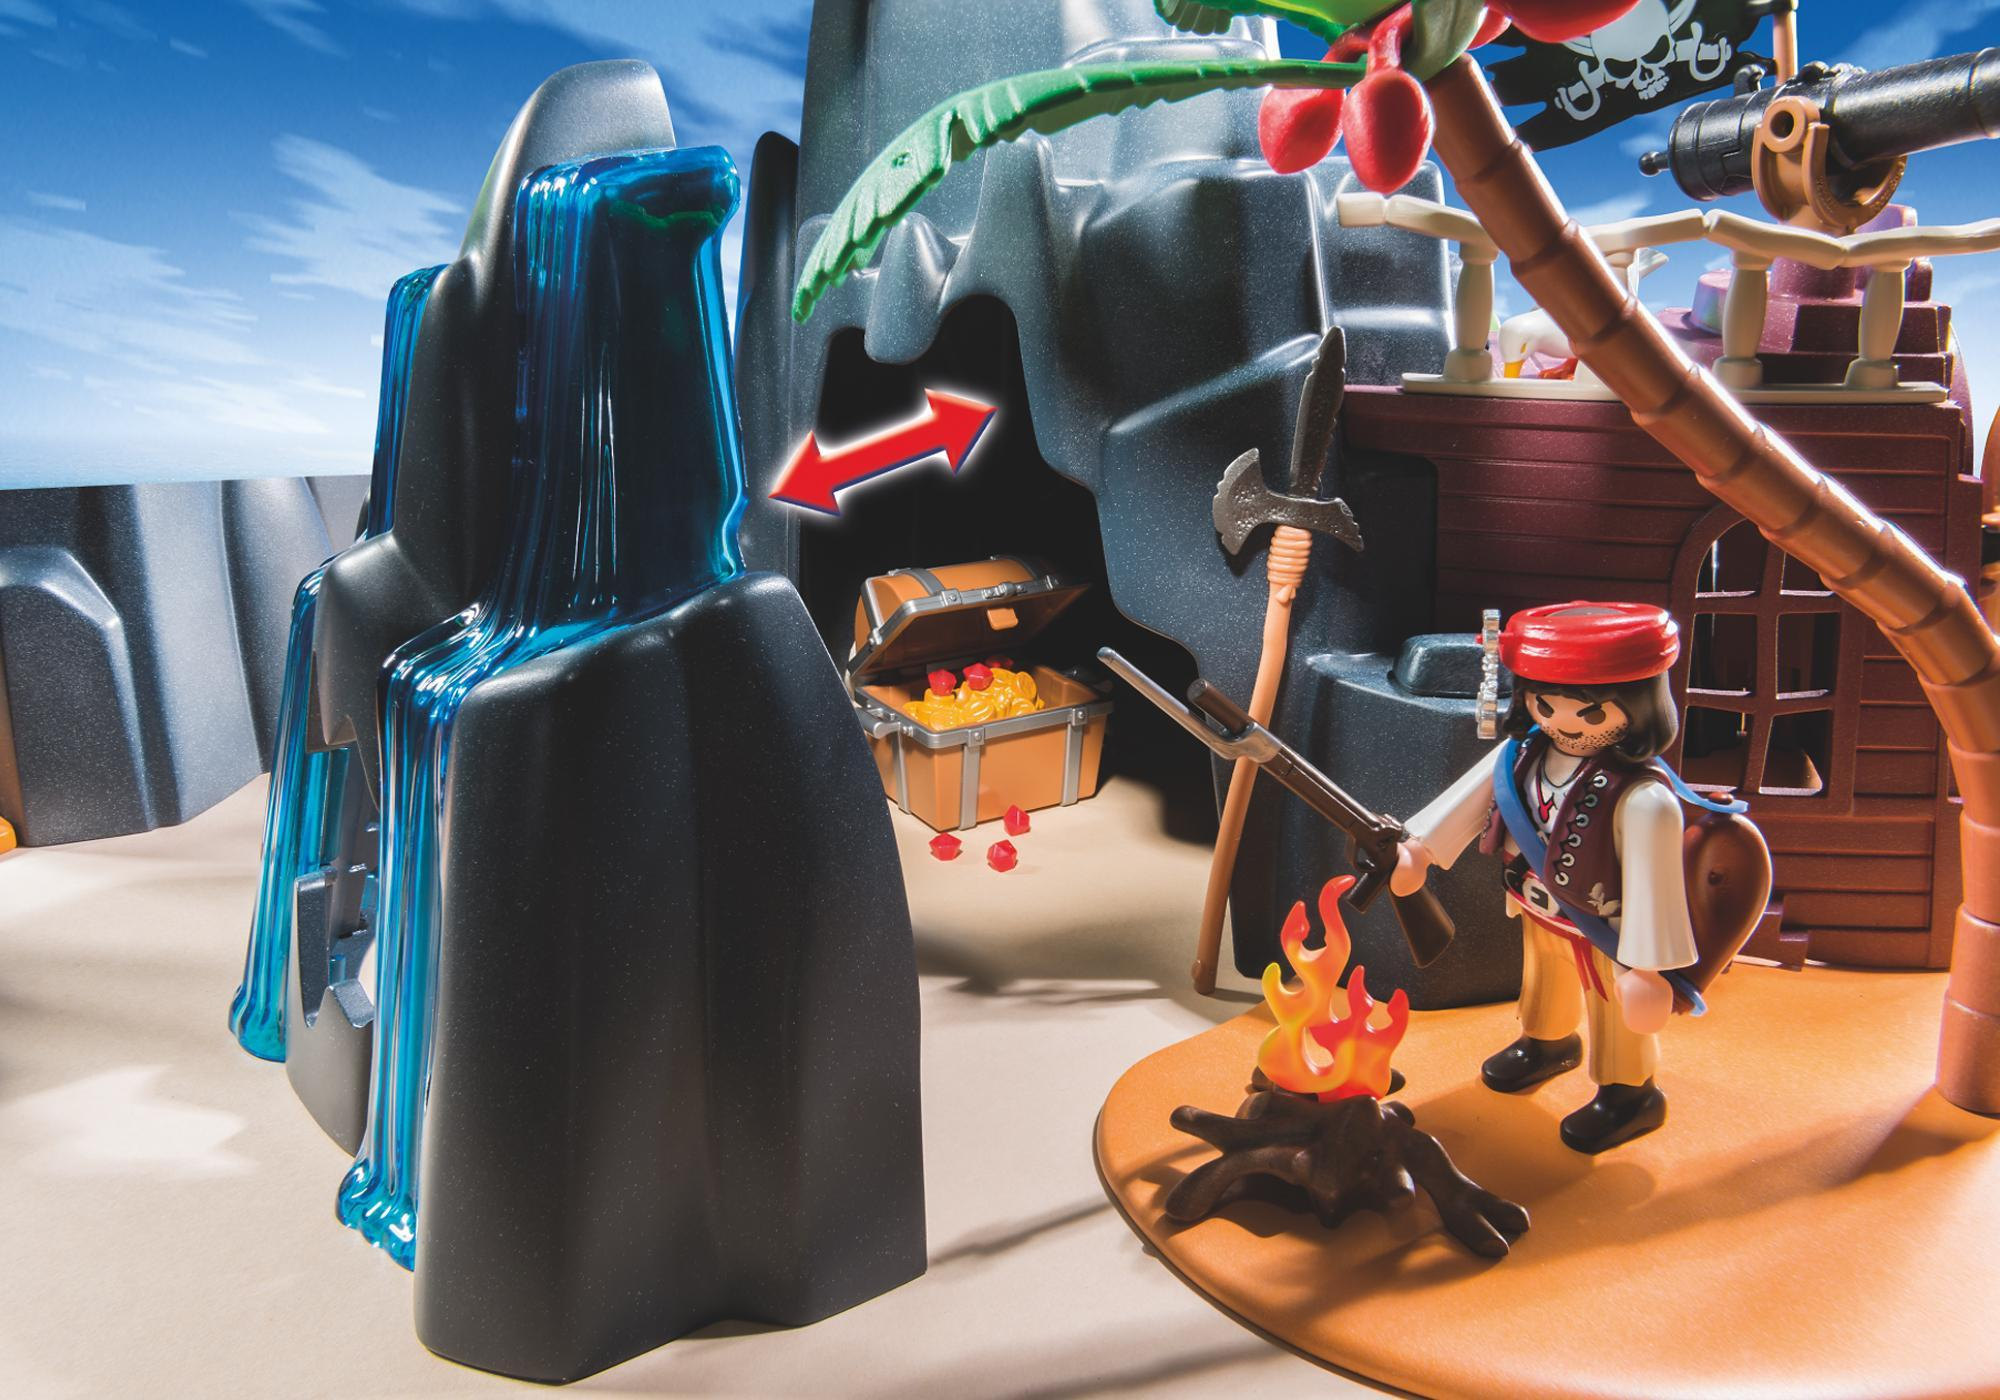 http://media.playmobil.com/i/playmobil/6679_product_extra1